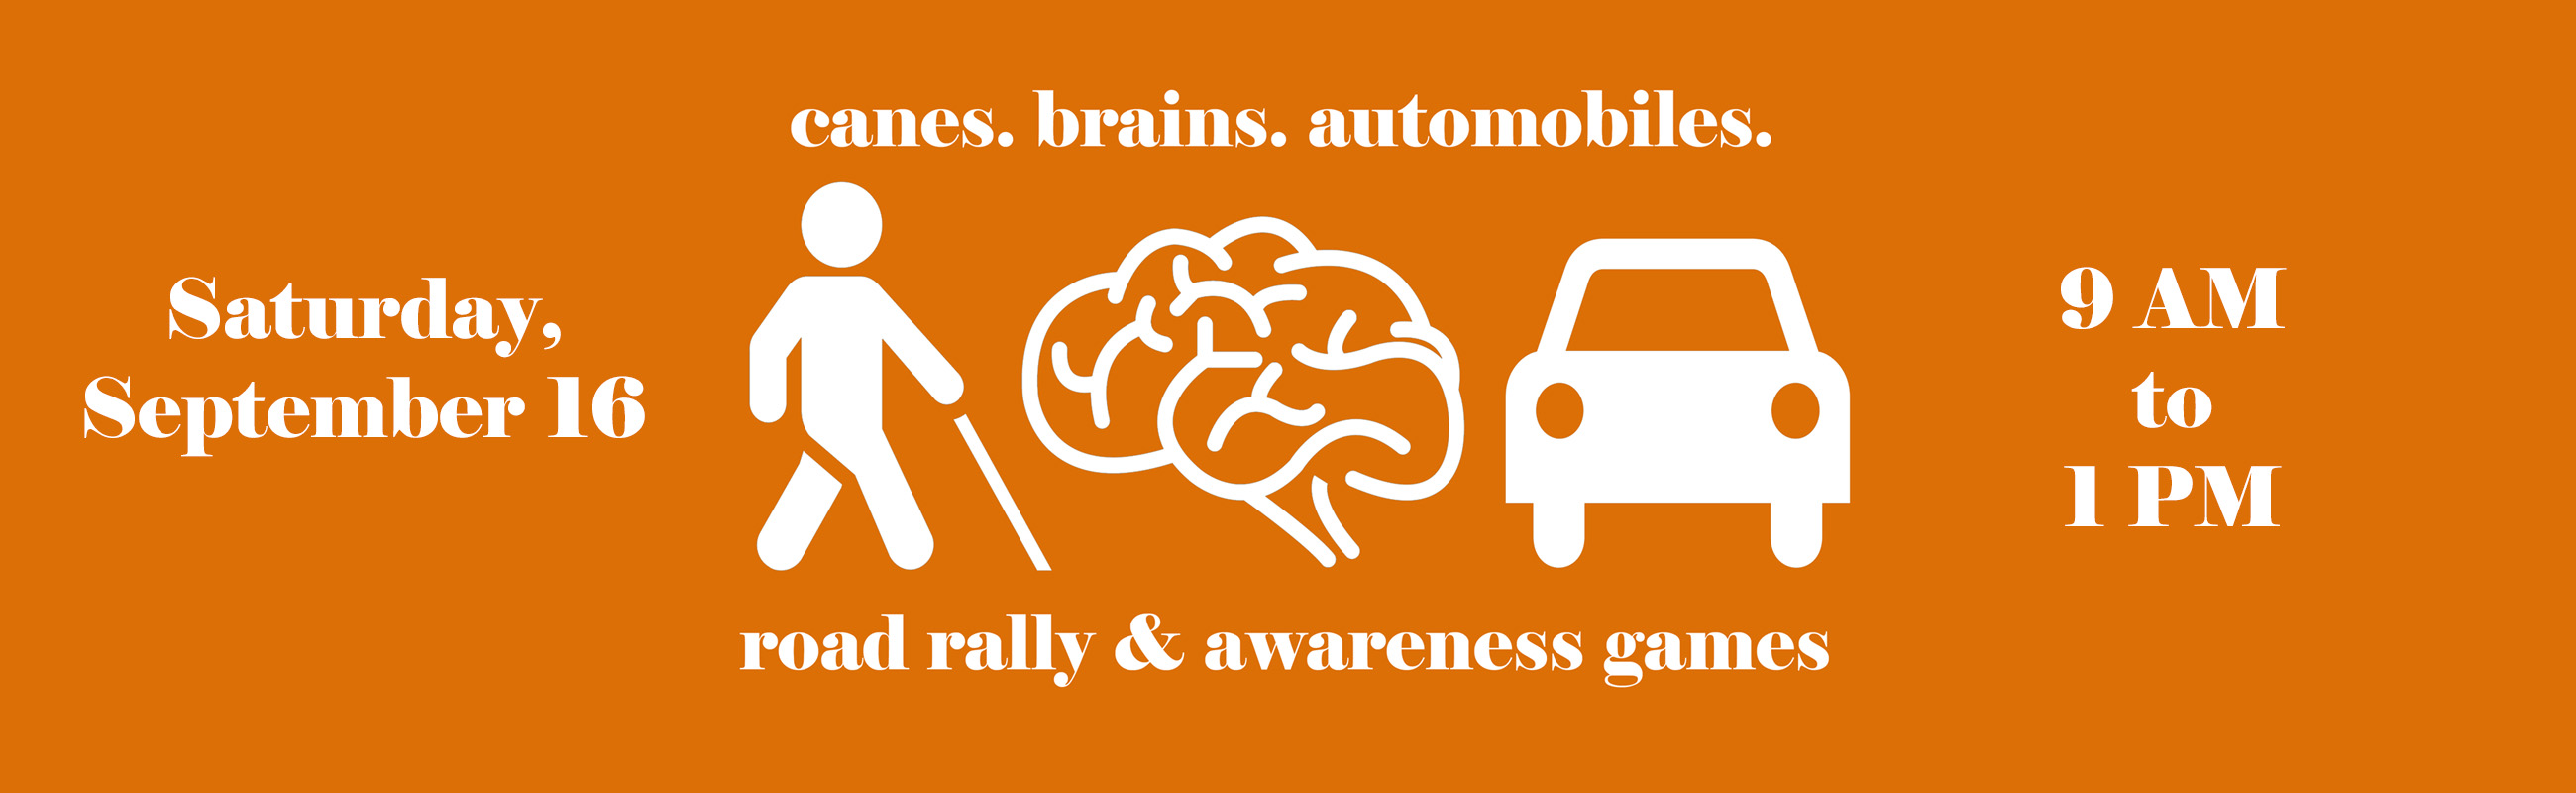 Canes Brains and Automobiles Road Rally and Awareness Games